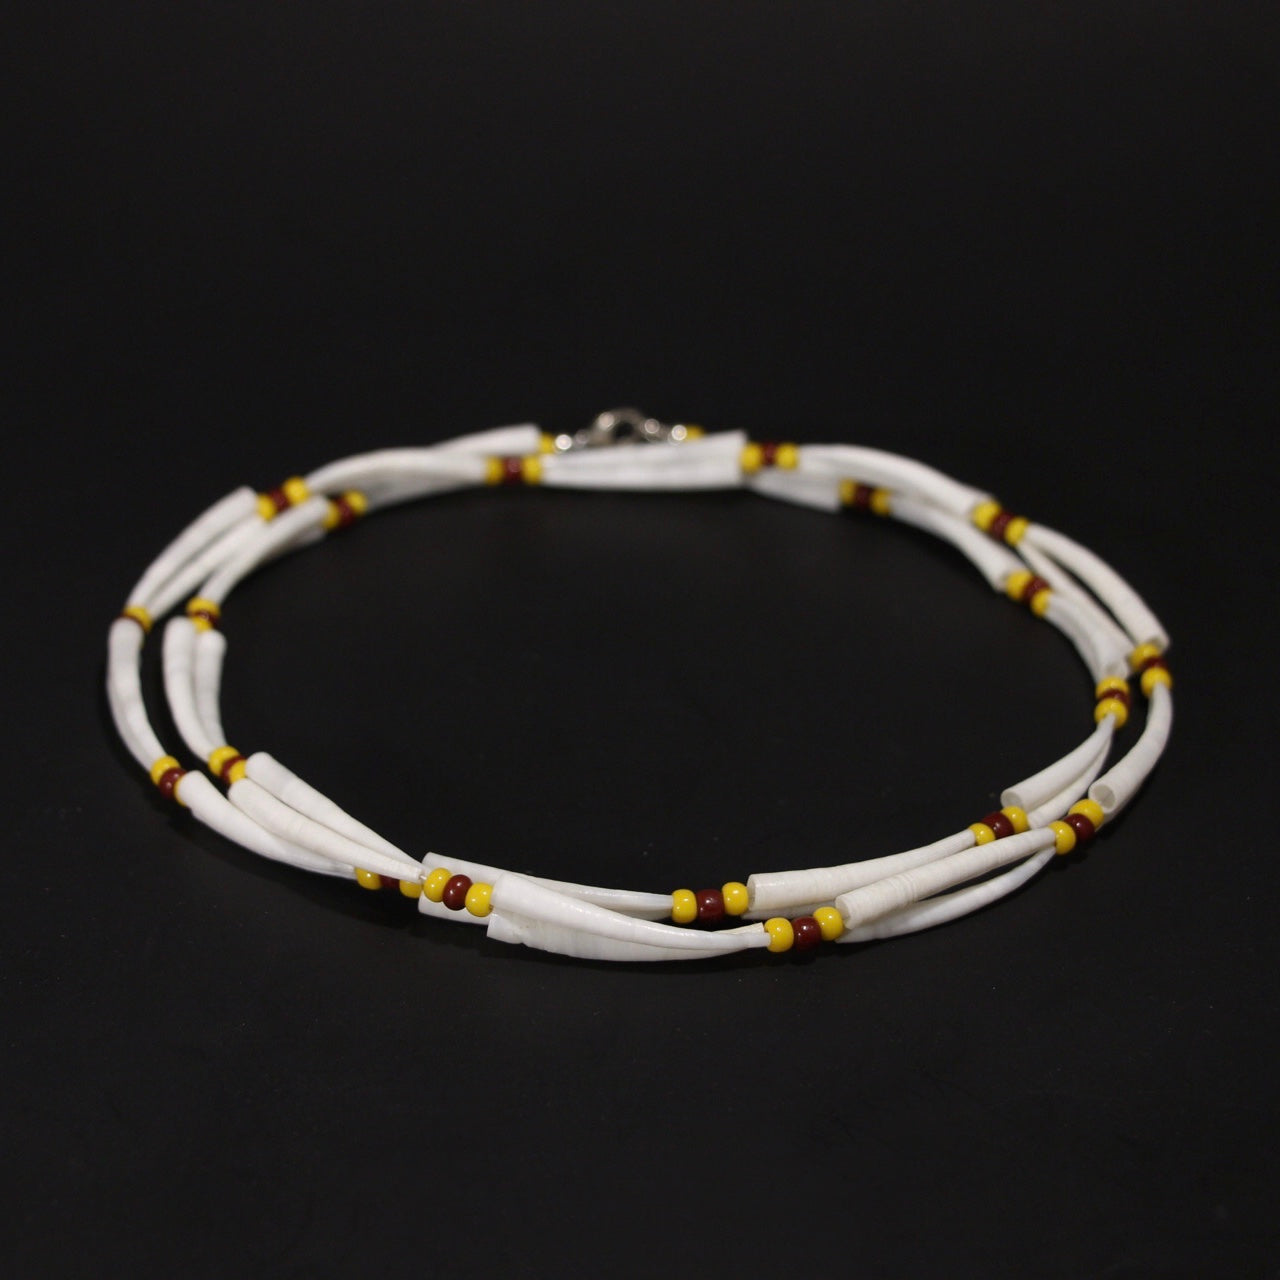 Dentalium Shell Necklace - Yellow and Brown